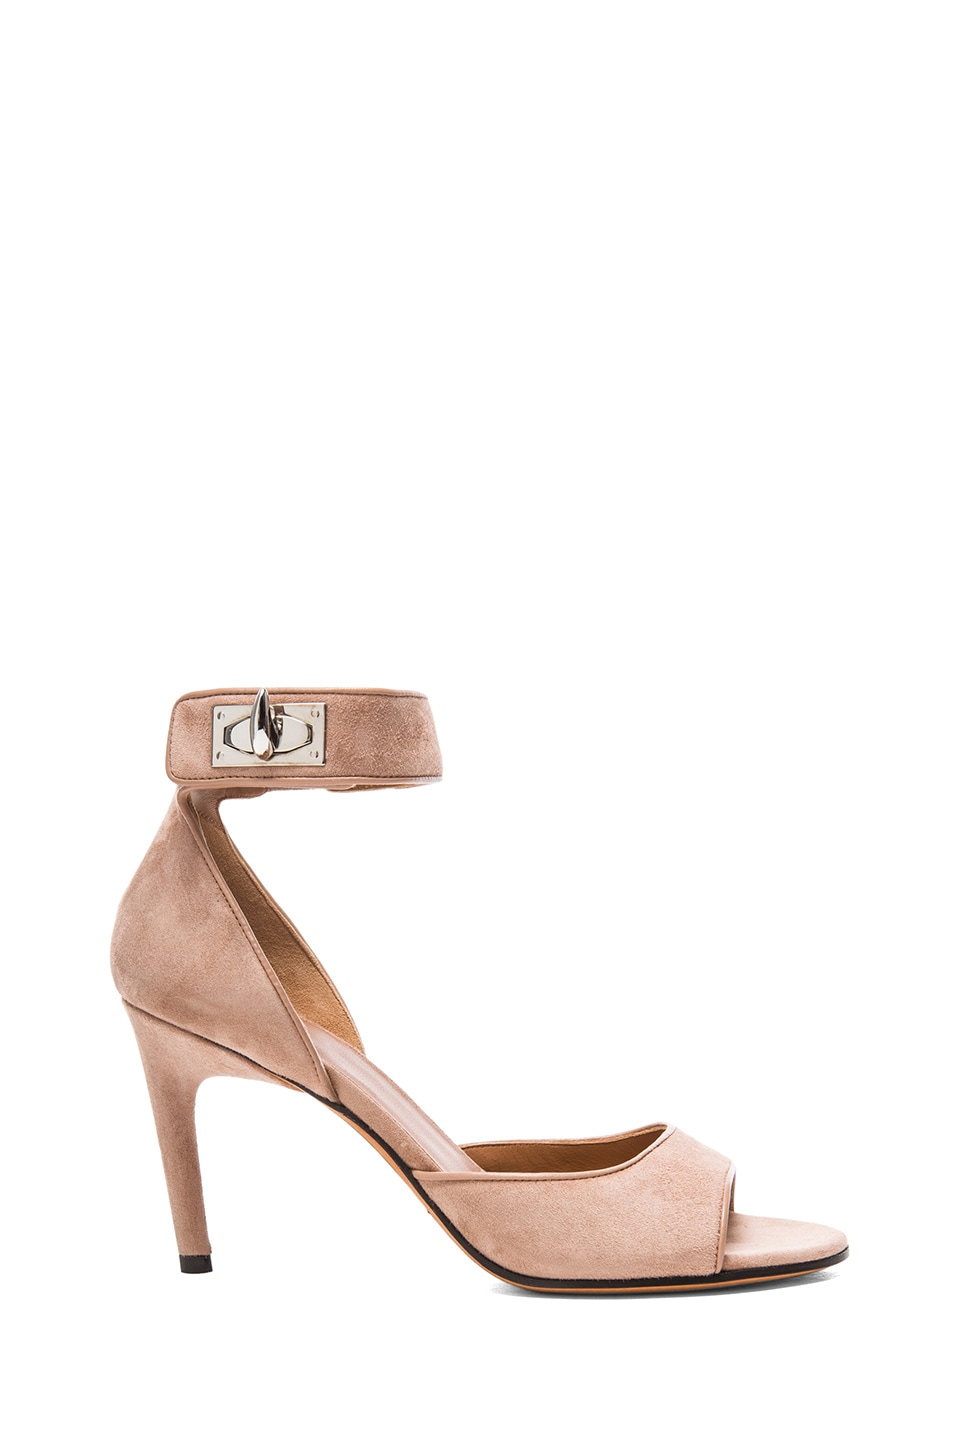 Image 1 of GIVENCHY Conan Shark Lock Suede Sandals in Rosewood